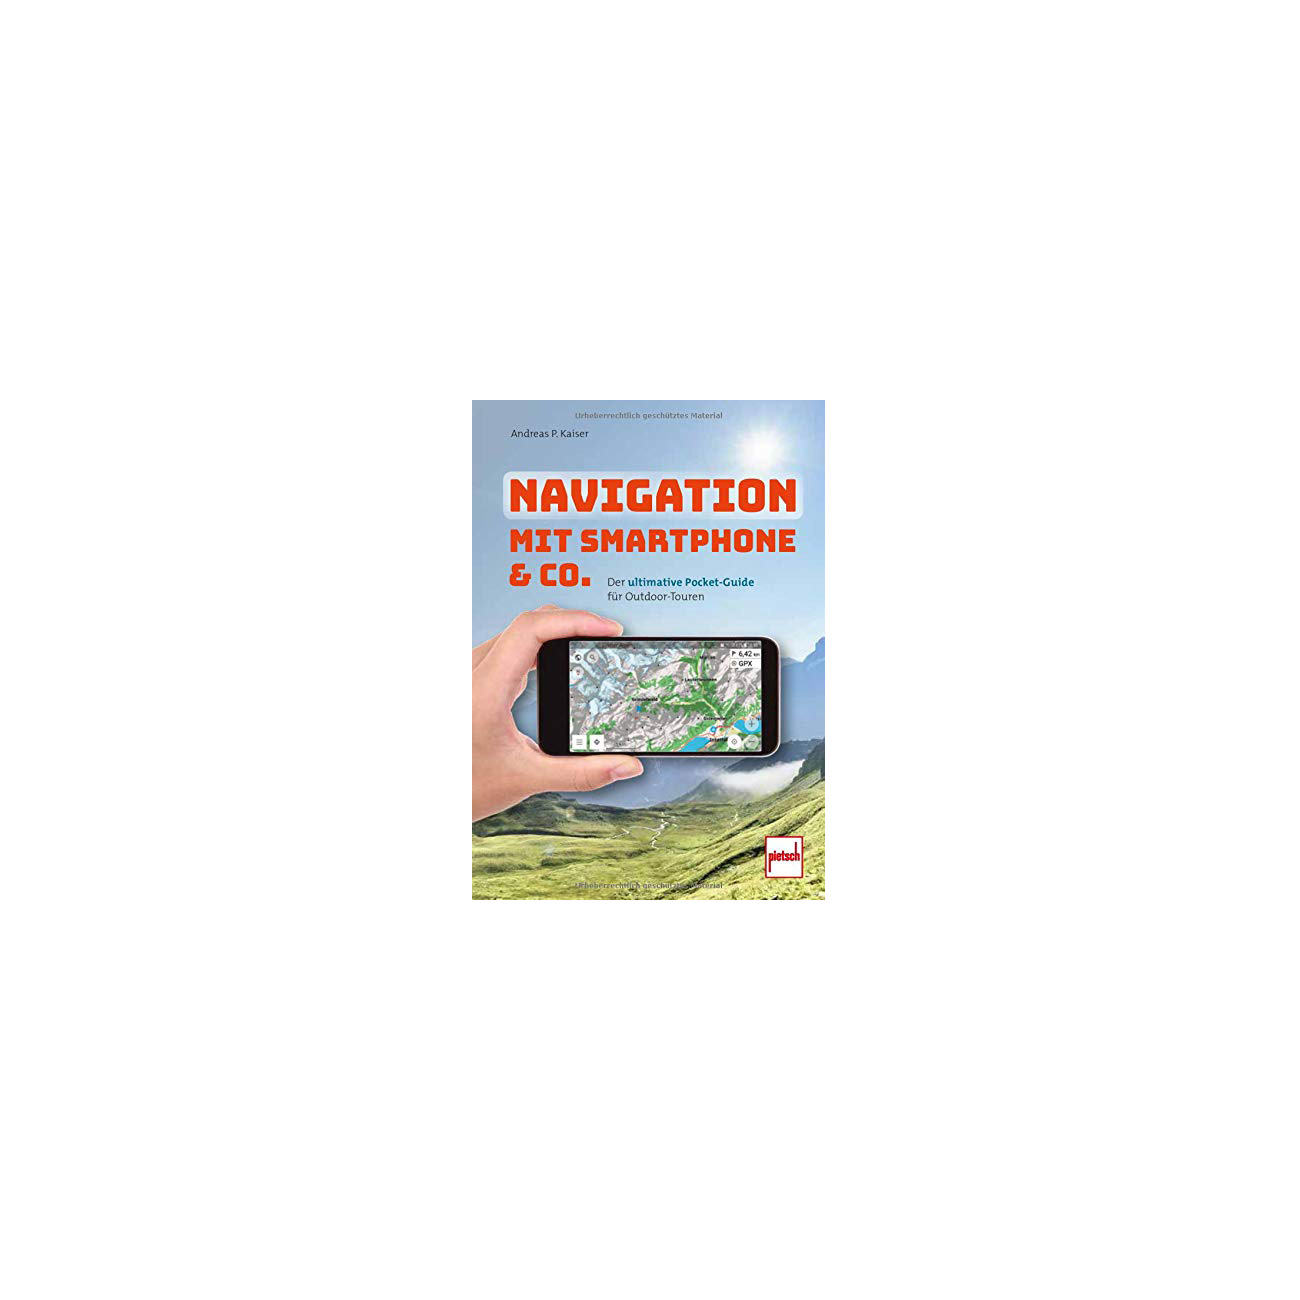 Navigation mit Smartphone & Co. - Der ultimative Pocket Guide für Outdoor-Touren 0